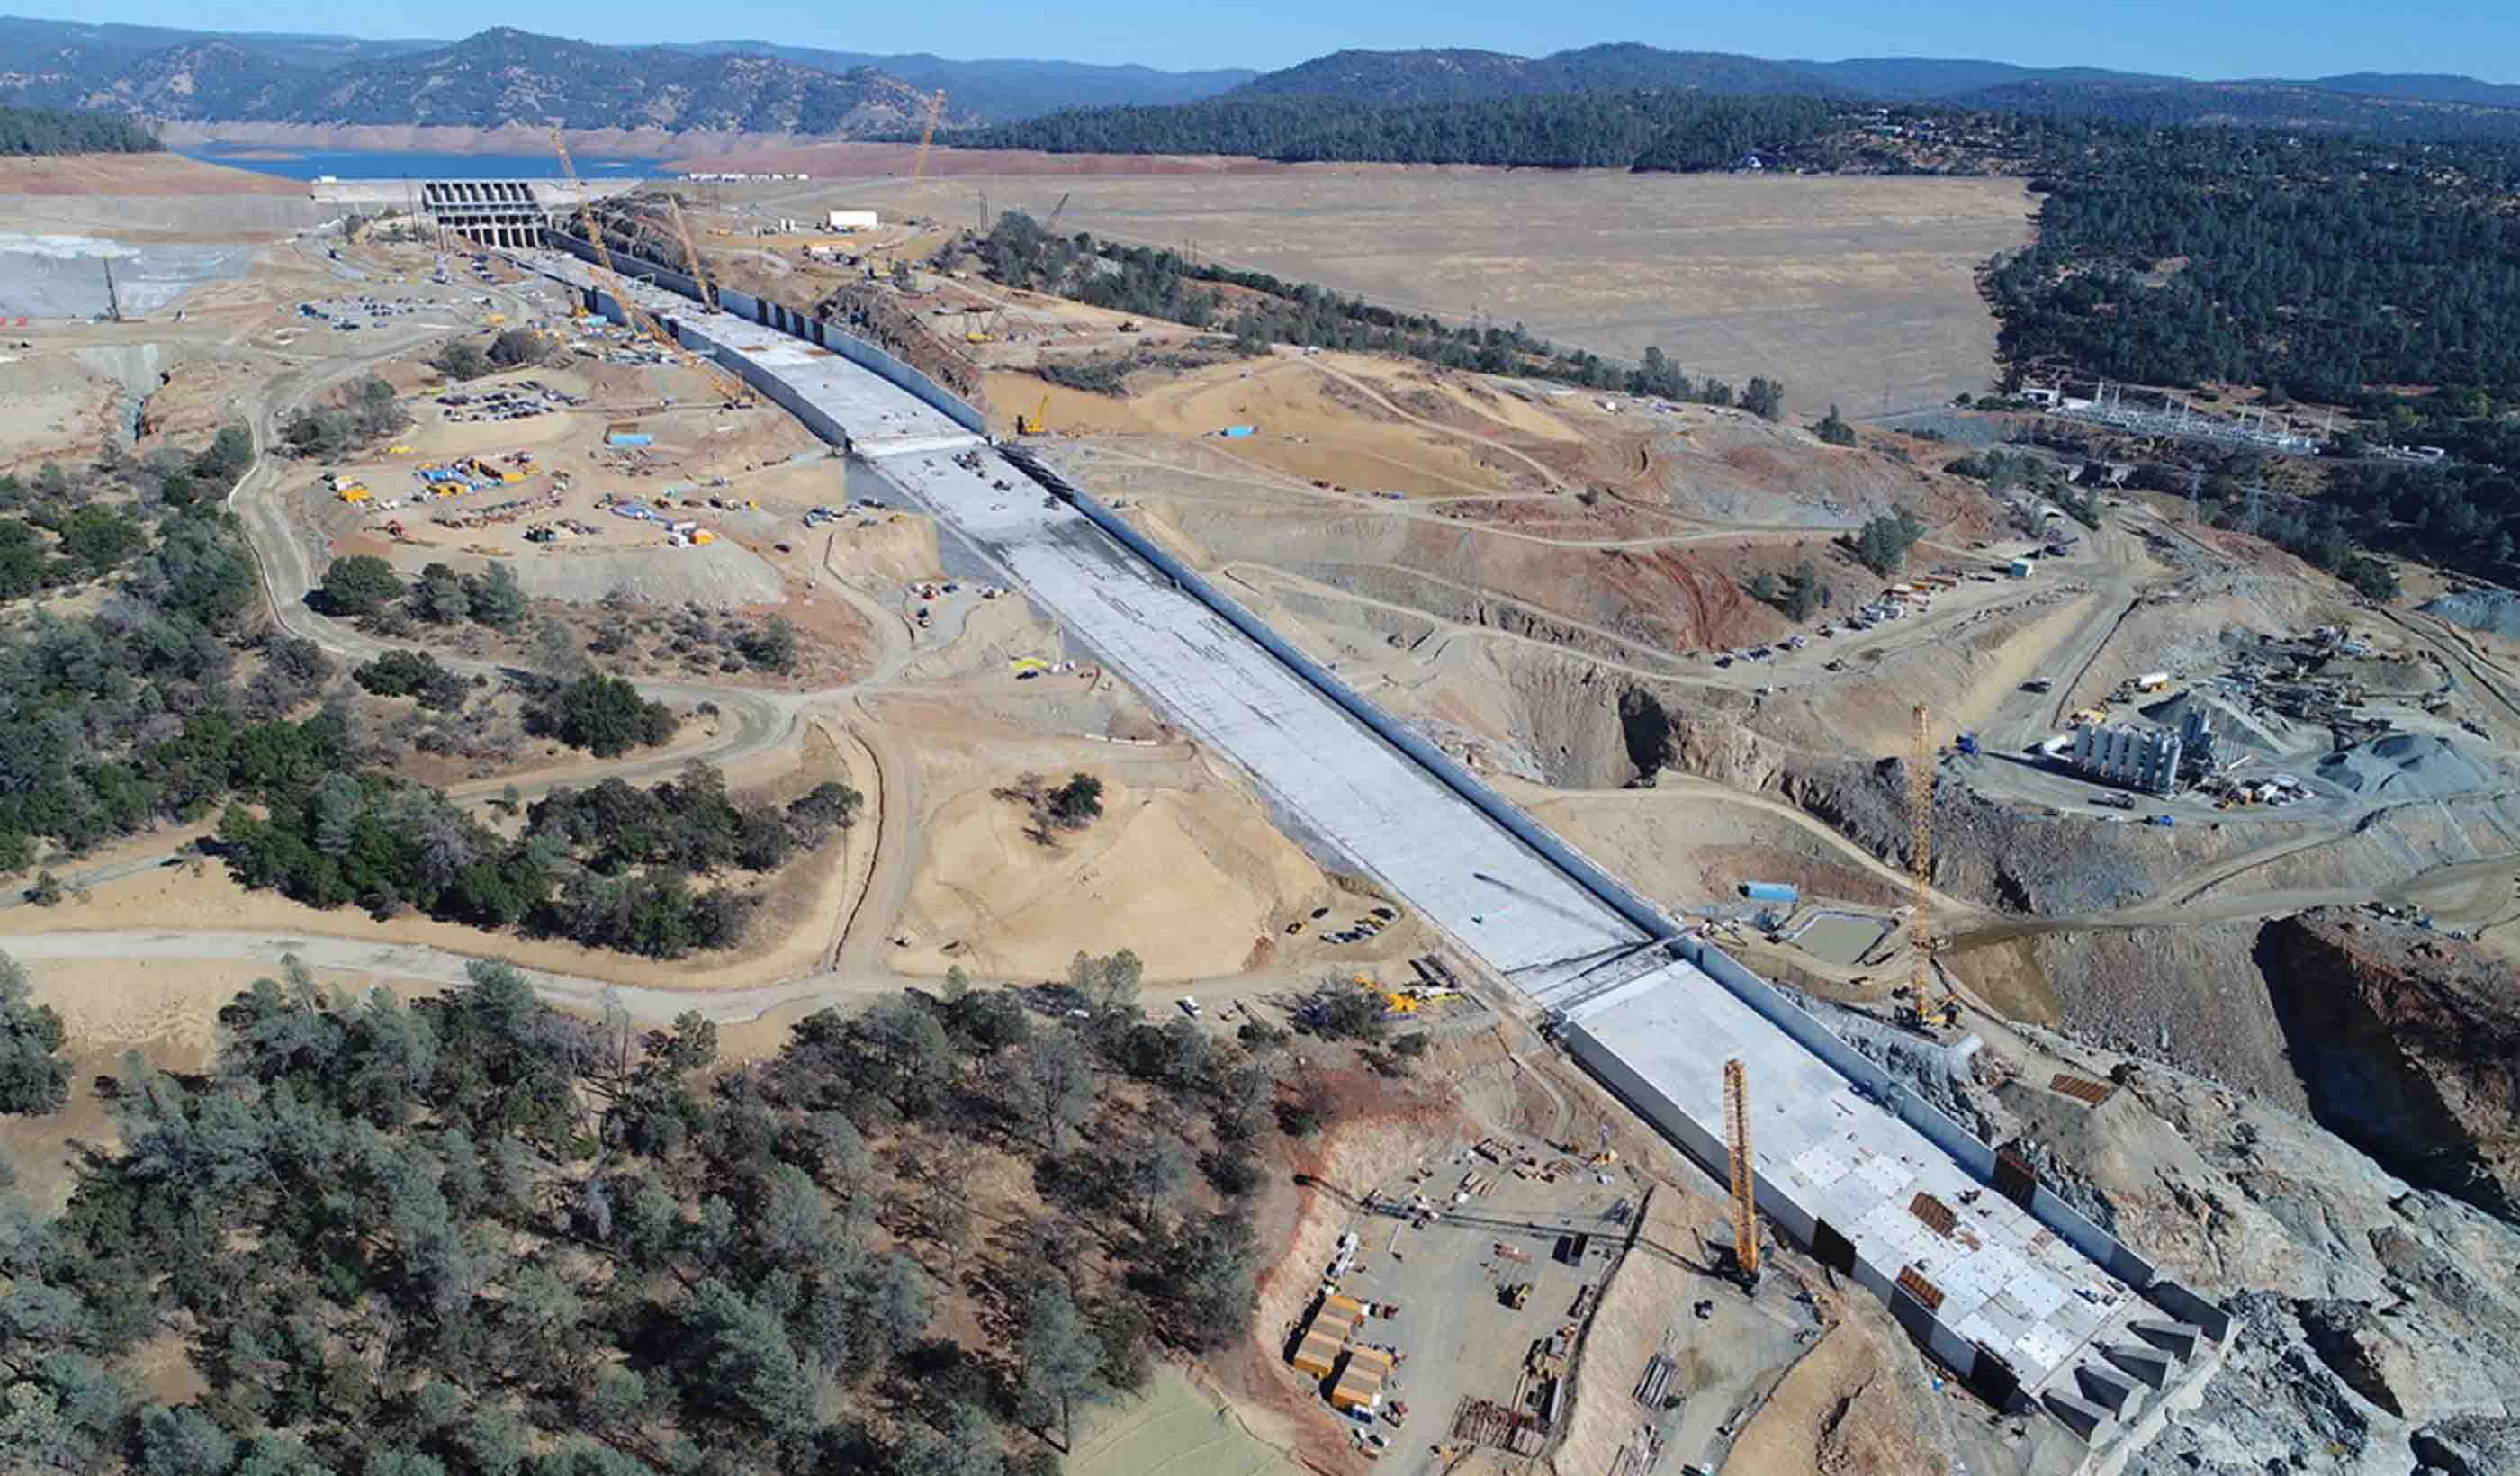 Oroville Dam Spillway Recovery Engineering and Construction